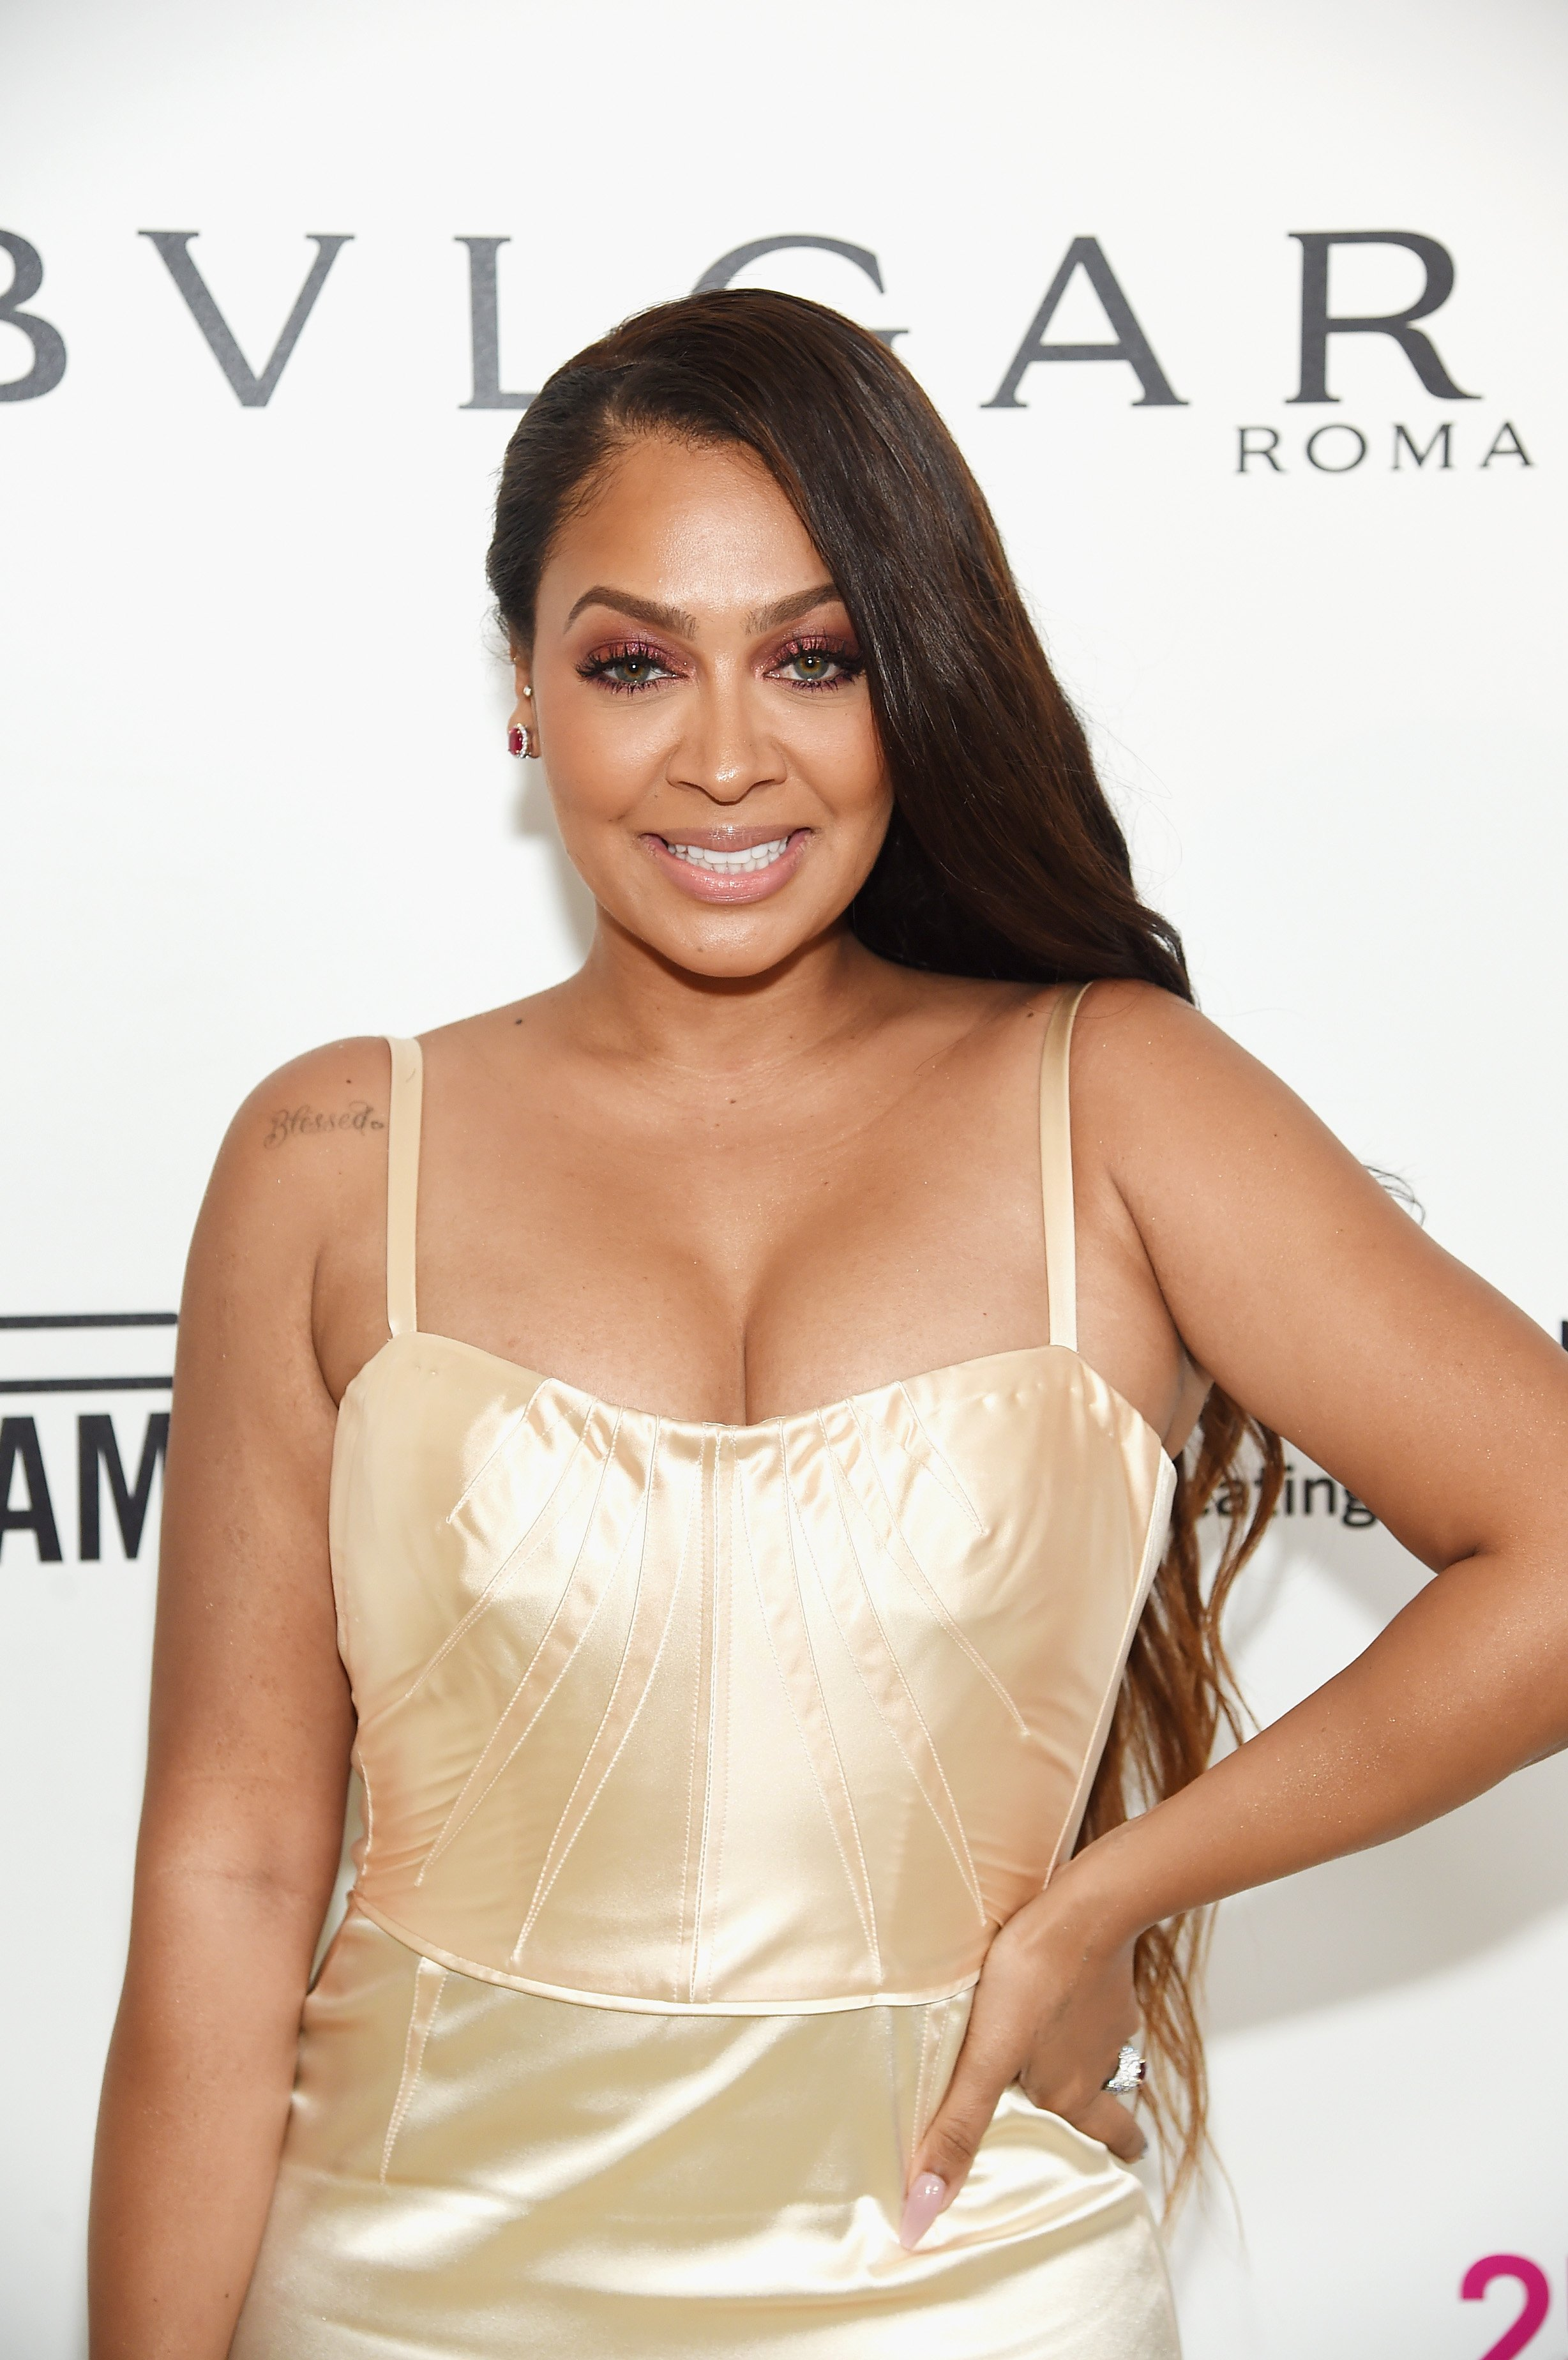 La La Anthony attends the 26th annual Elton John AIDS Foundation Academy Awards Viewing Party on March 4, 2018. | Photo: Getty Images